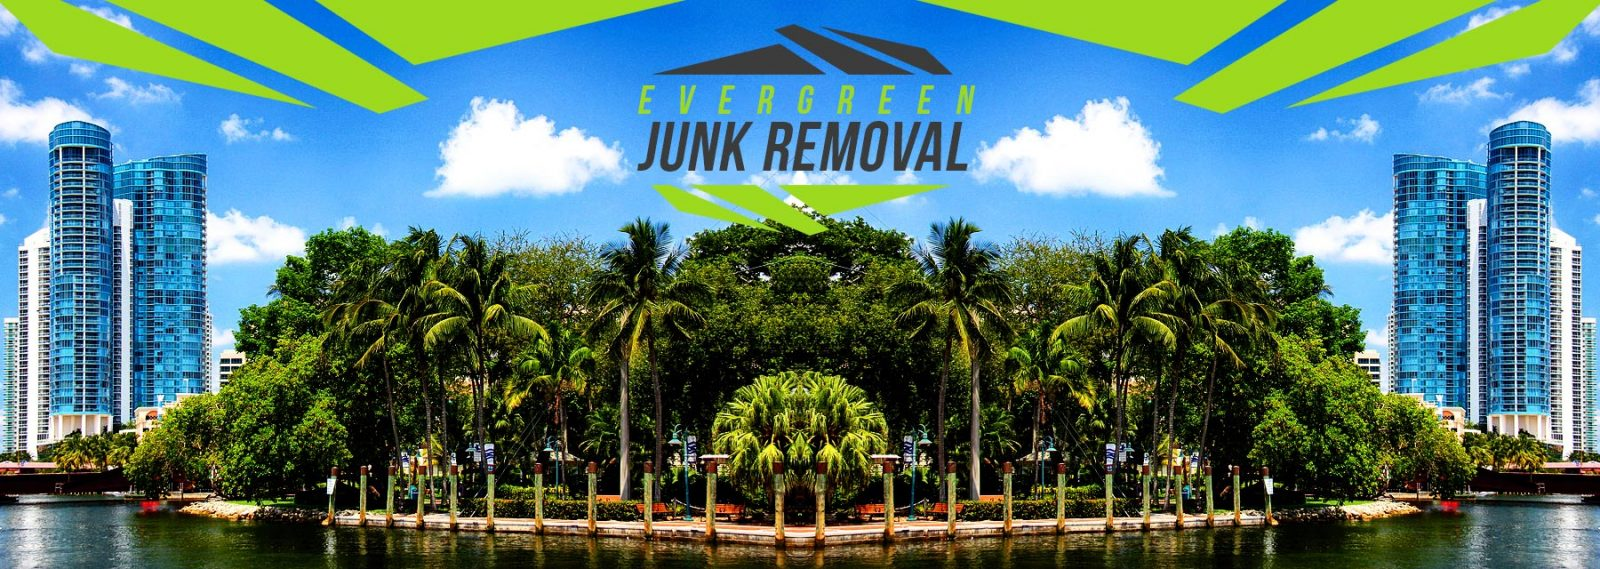 Tampa Hot Tub Removal Company